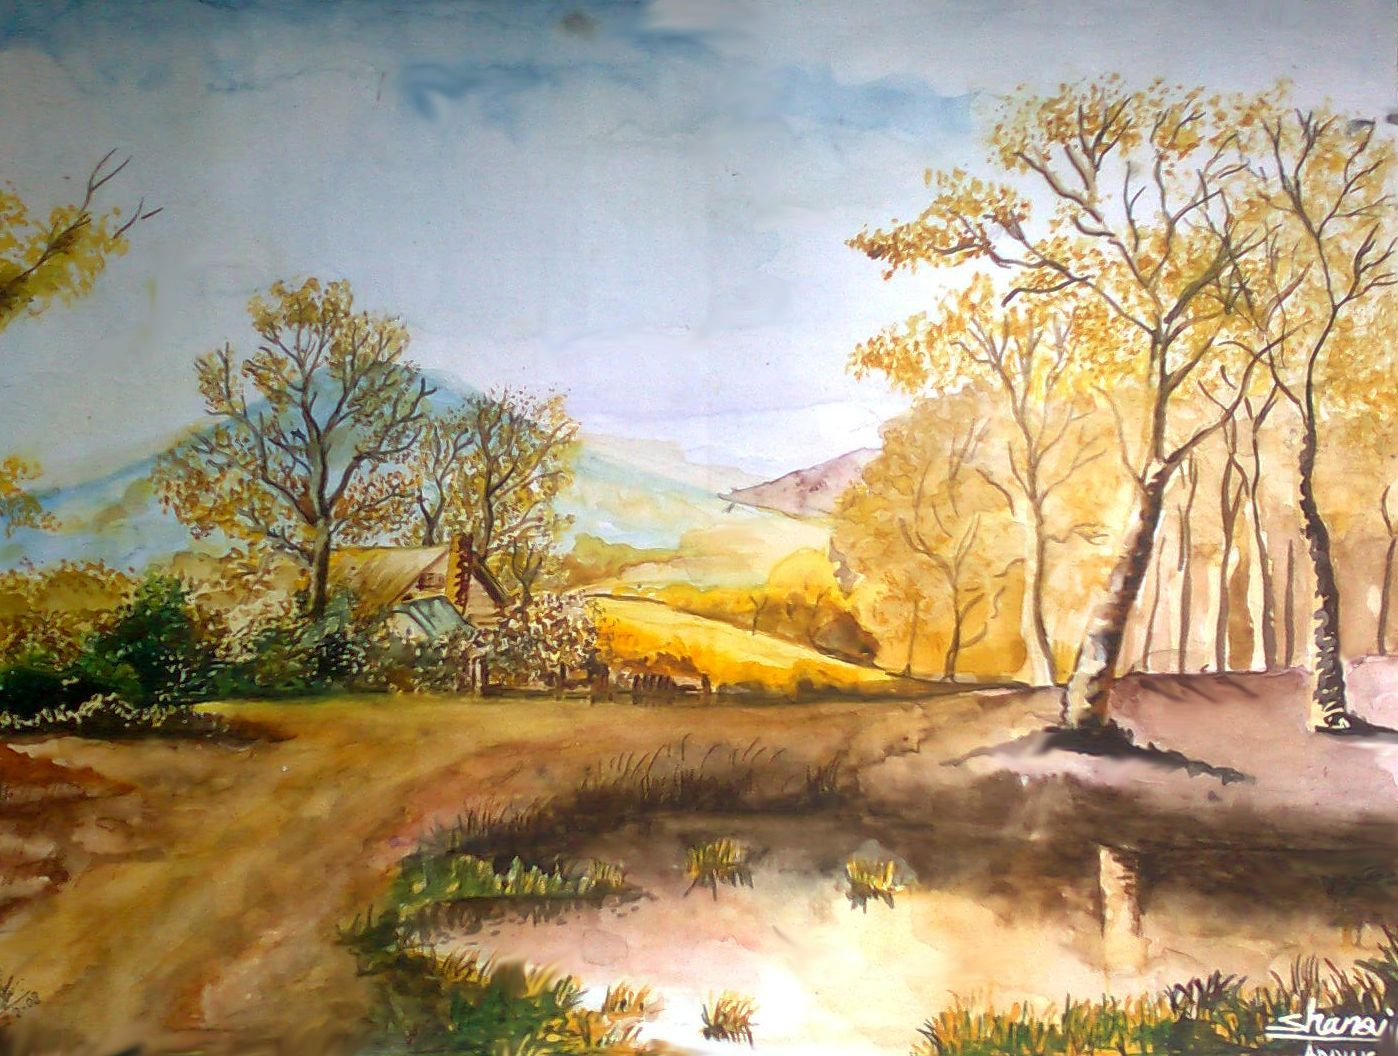 Drawn scenery colored pencil Drawing Drawing  Drawing 2001)